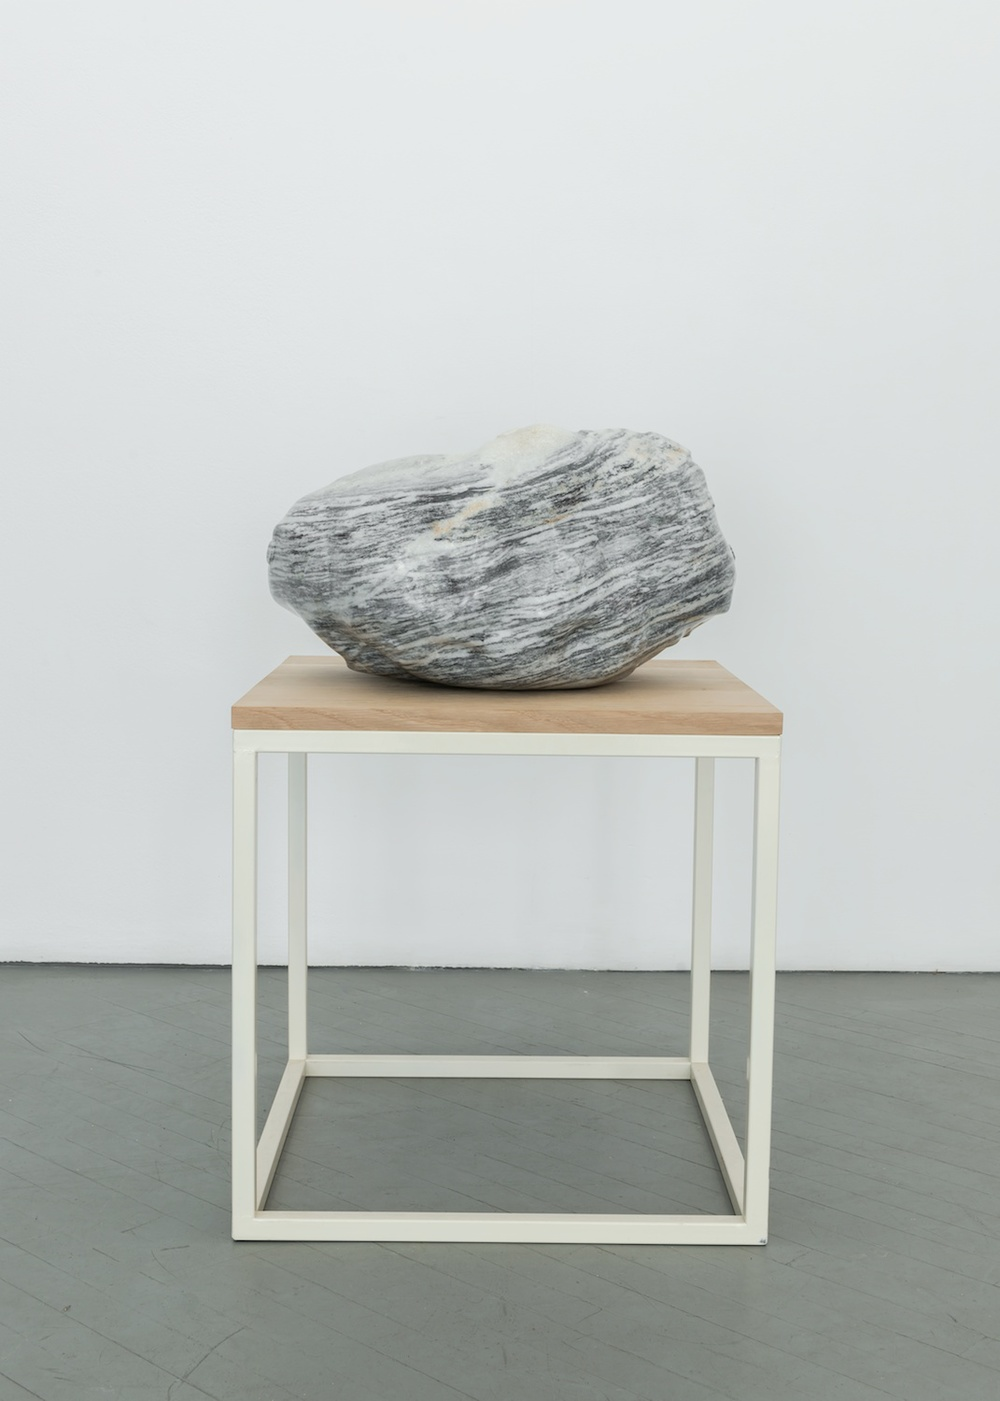 Alma Allen  Untitled   2013 Marble on oak and powder-coated steel pedestal 37h x 16w x 16d in AA008